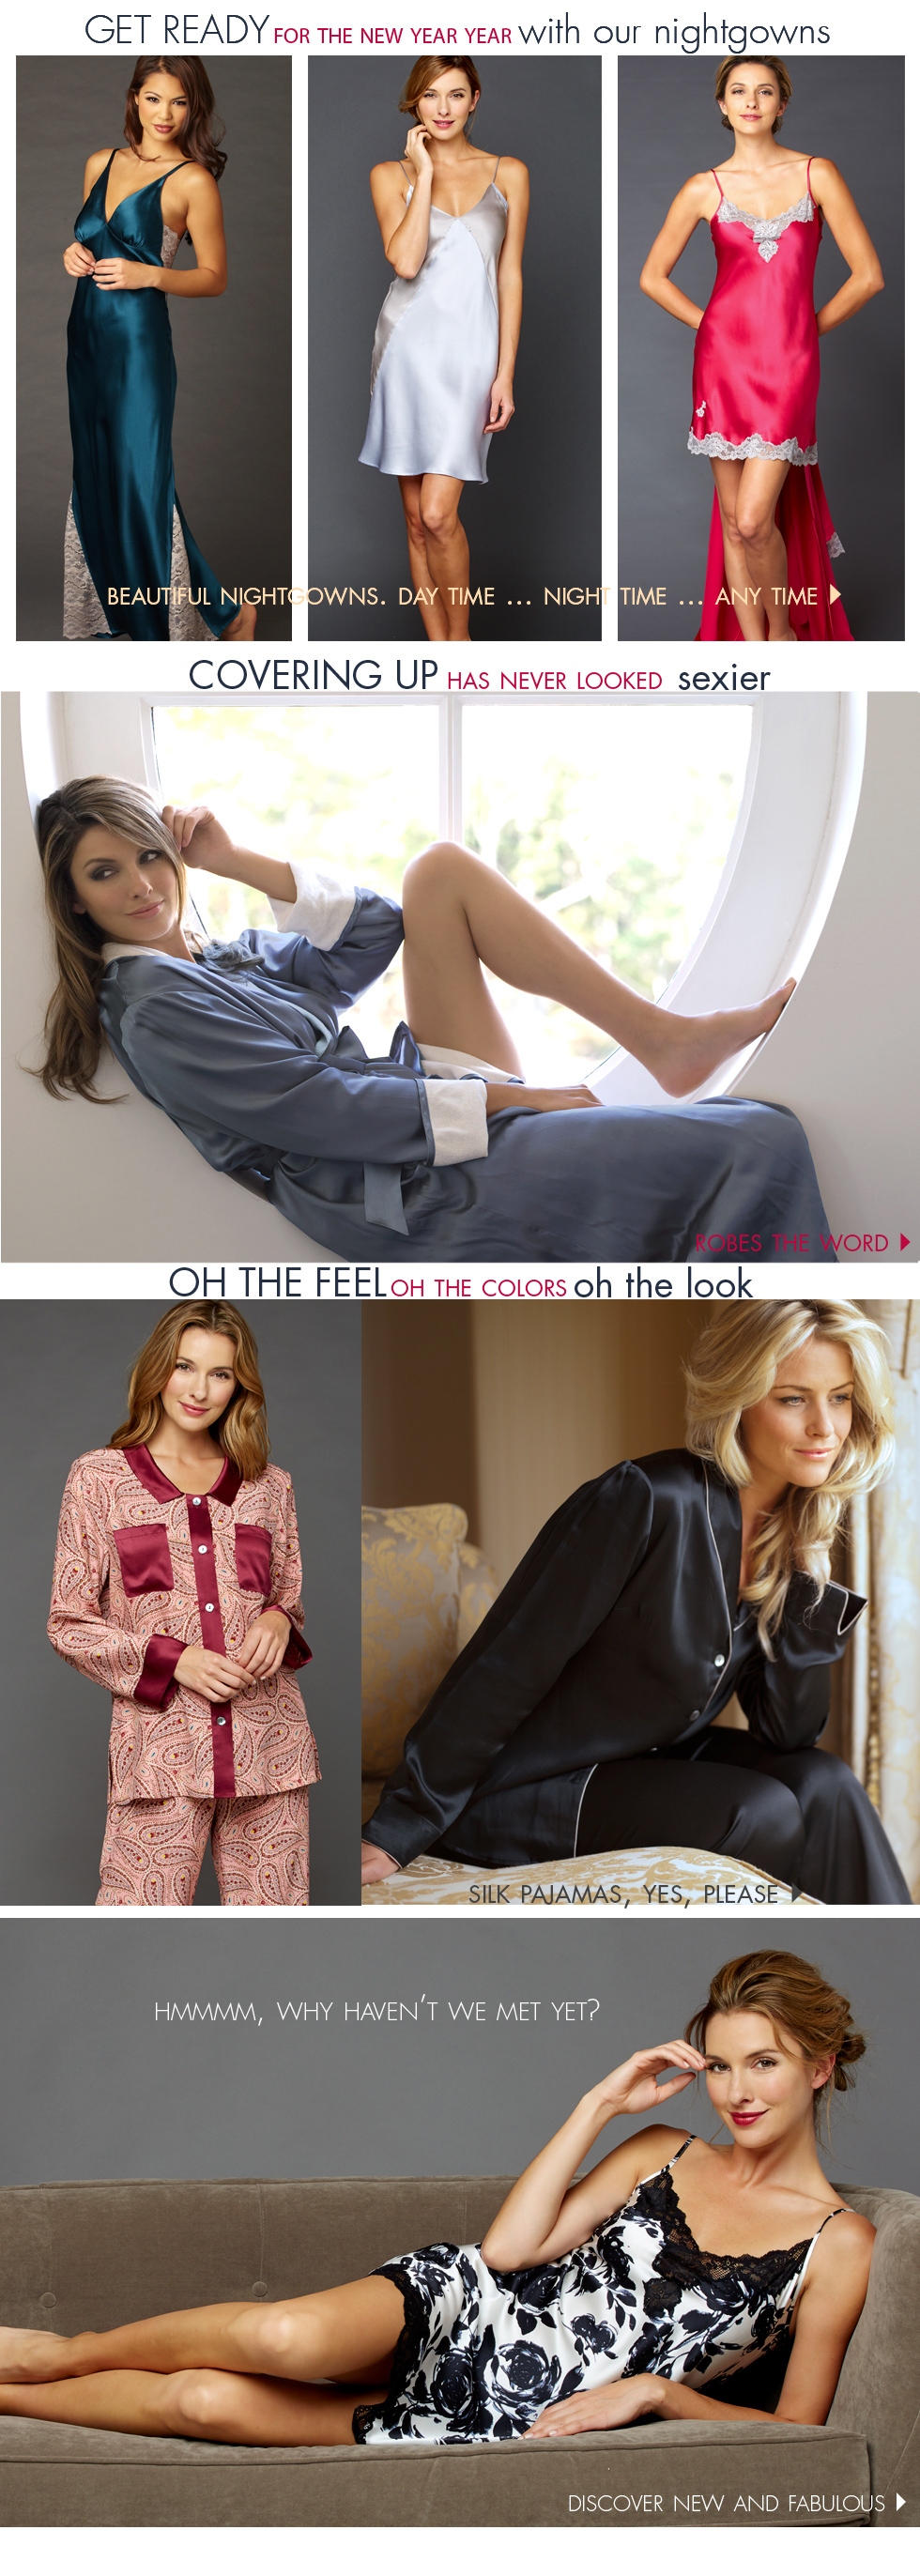 get ready for the new year with luxury sleepwear!